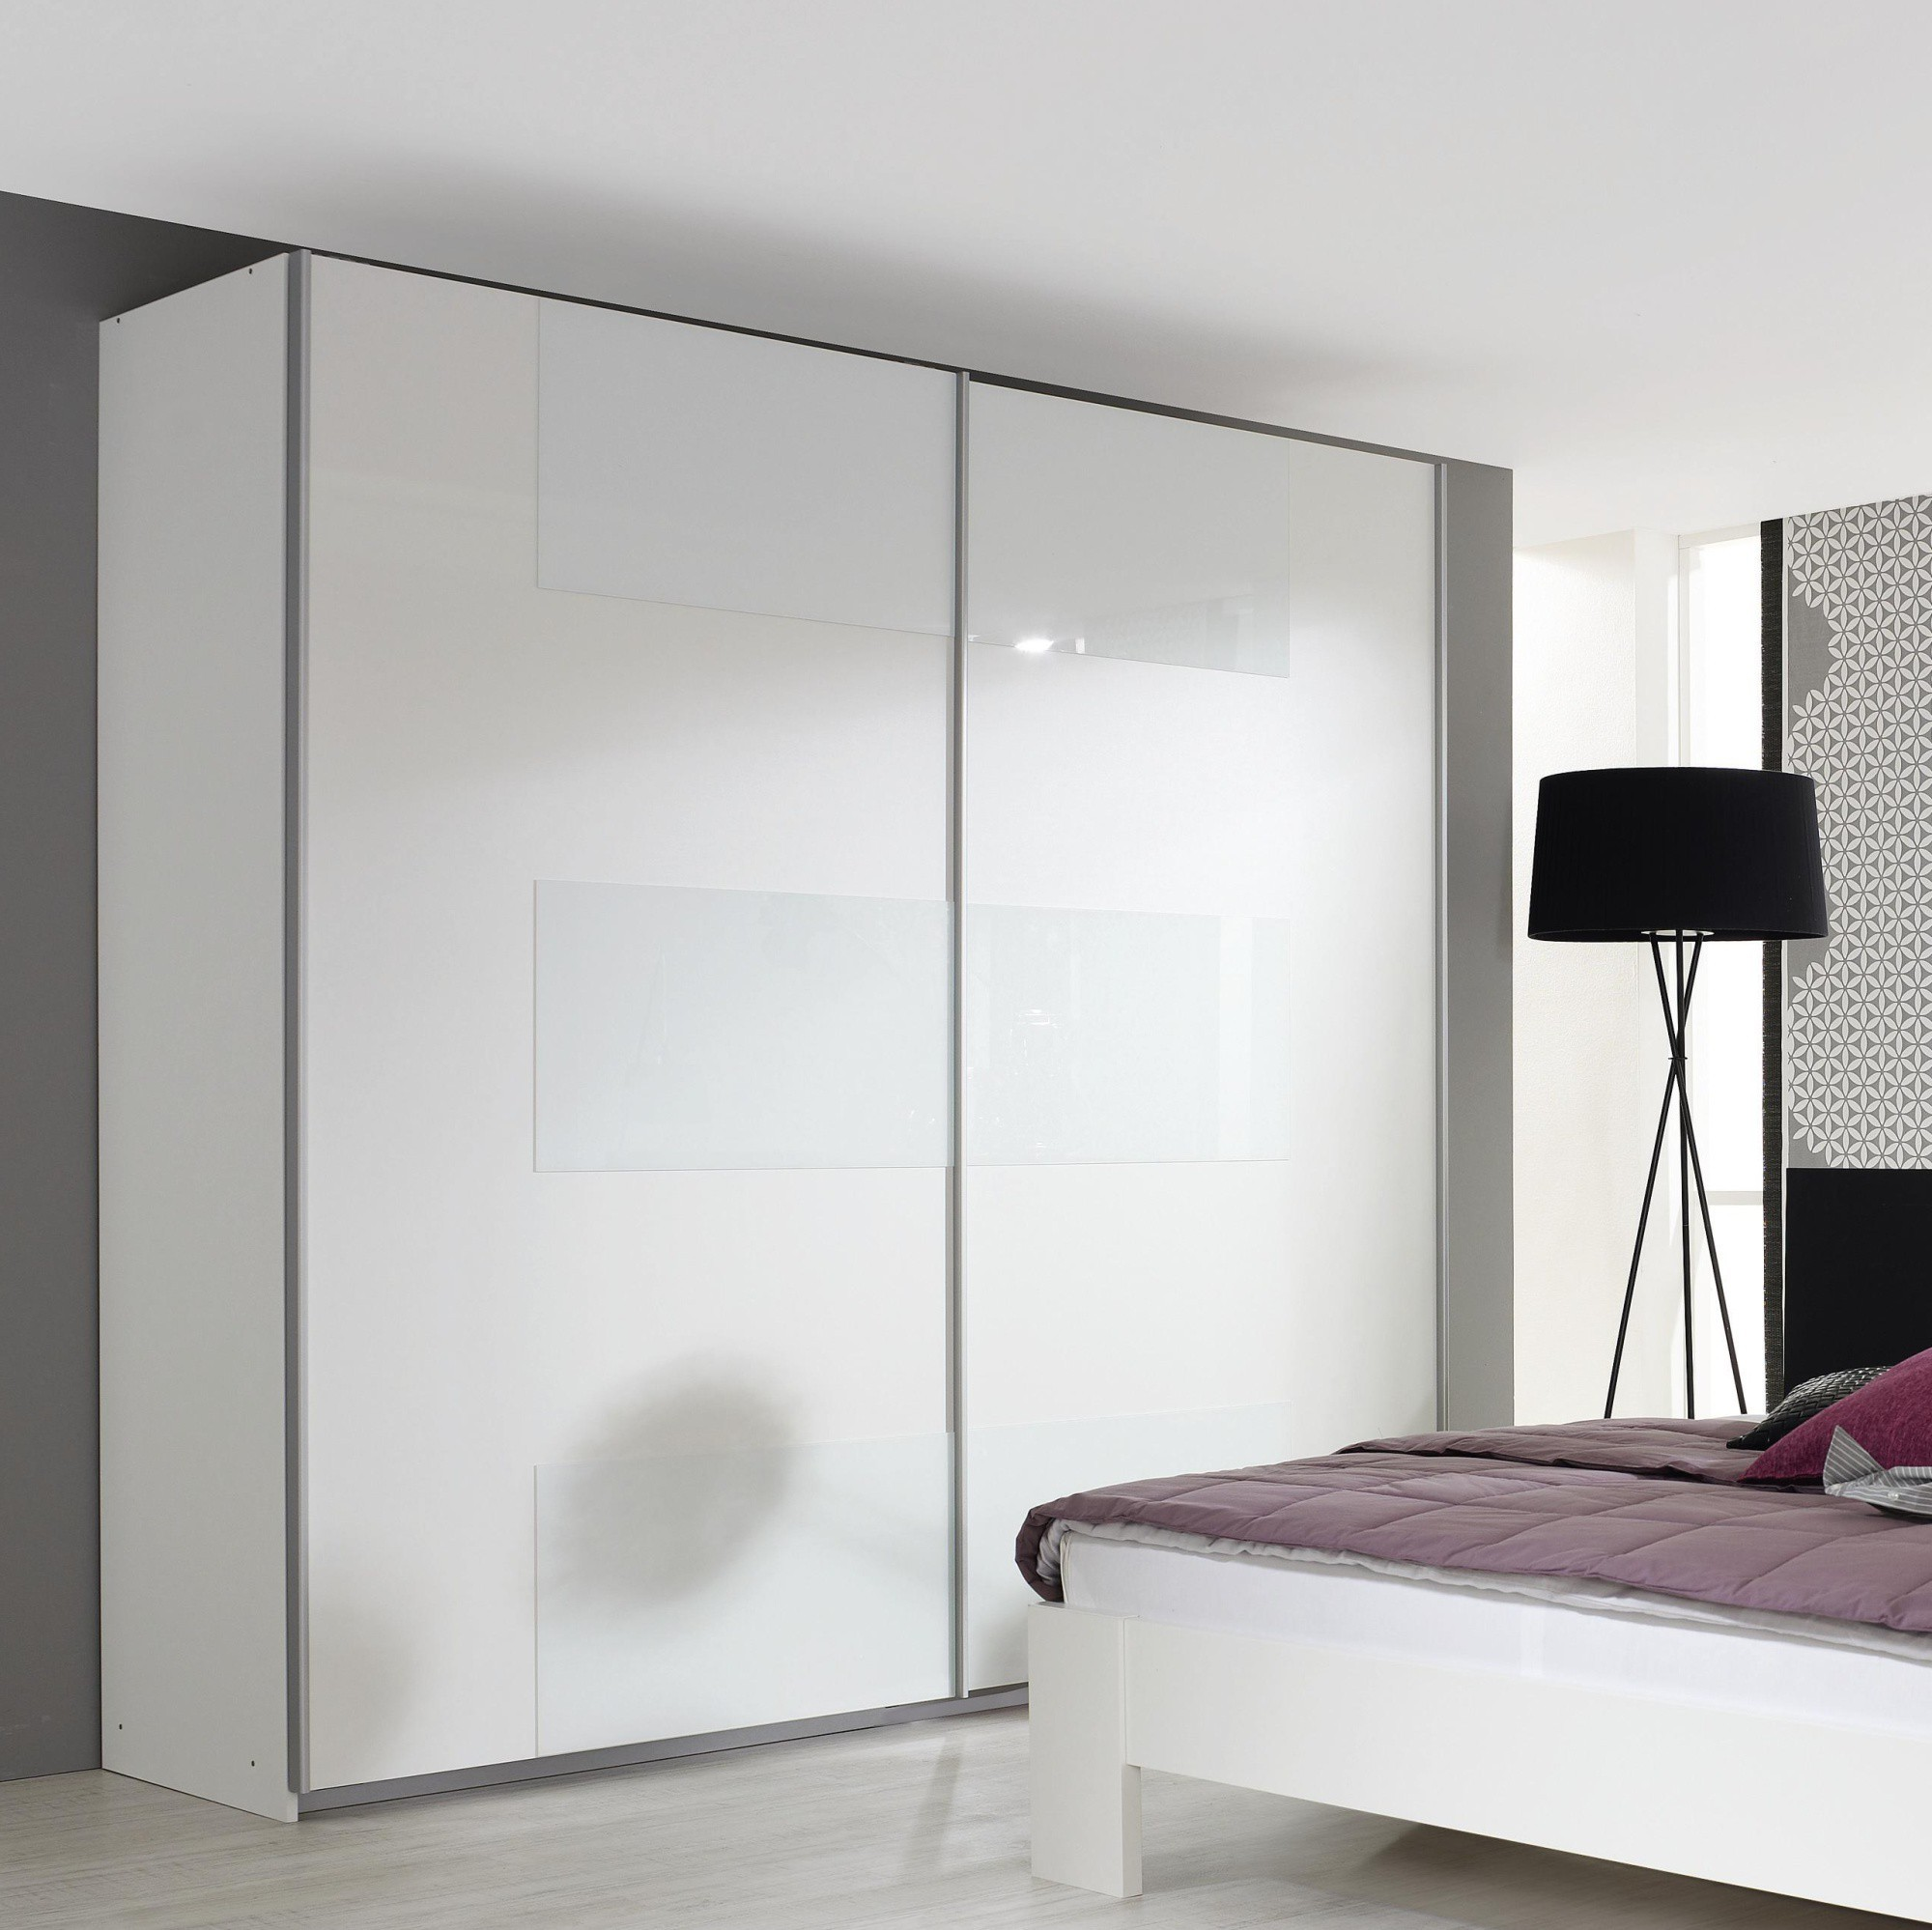 armoire coulissante avec miroir 34683 armoire id es. Black Bedroom Furniture Sets. Home Design Ideas